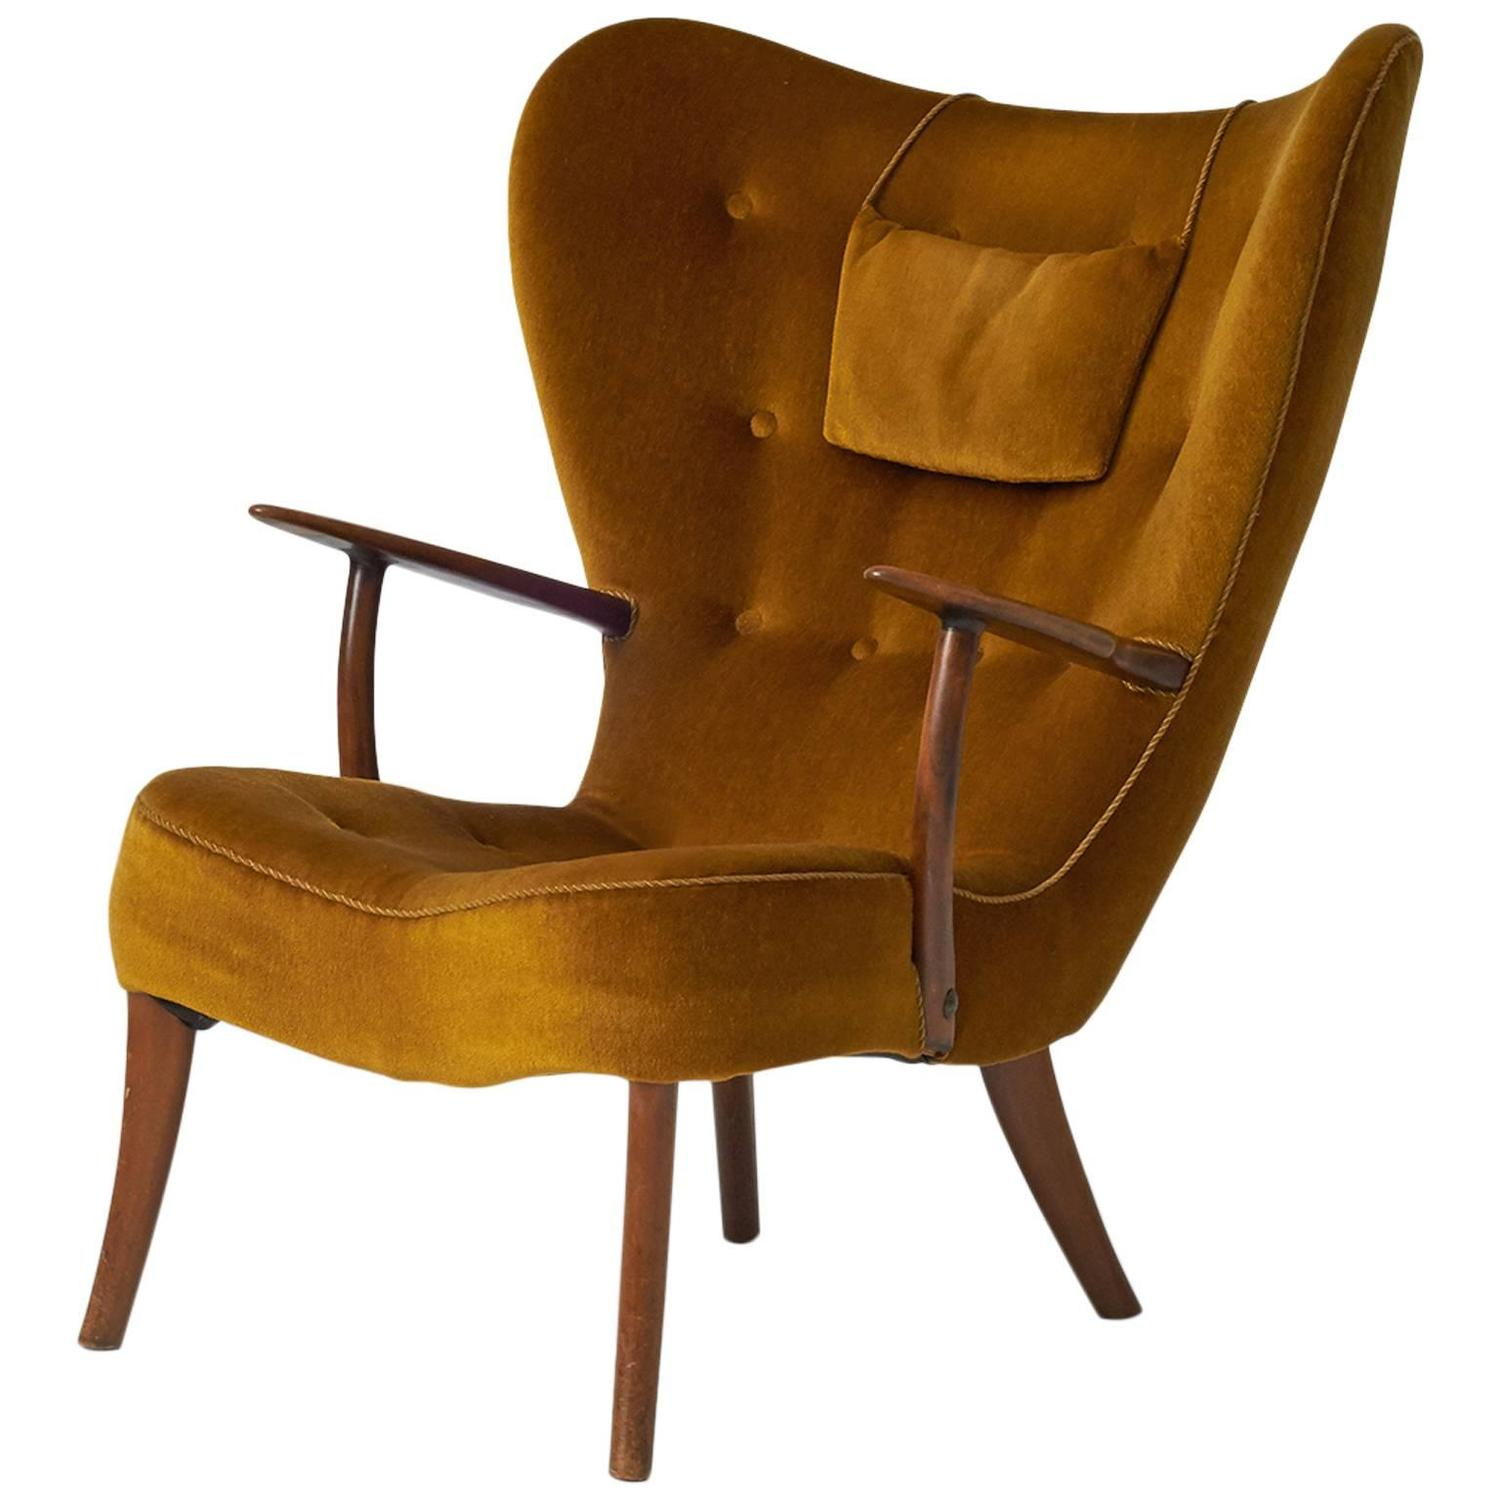 Awesome Acton Schubell And Ib Madsen Lounge Chair